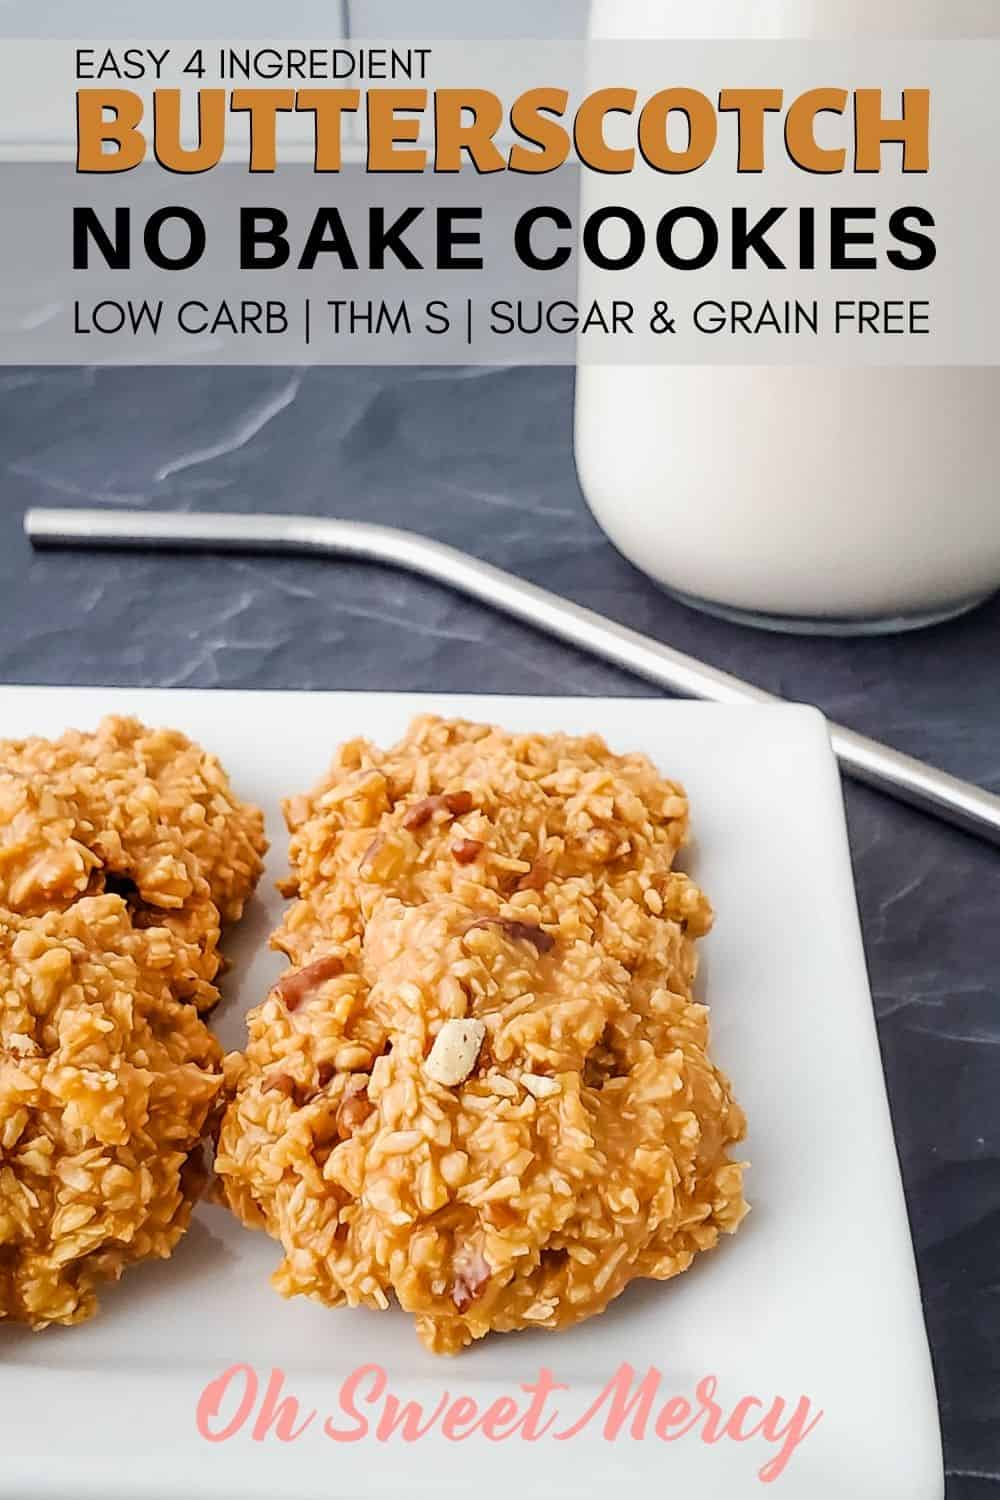 Quick and easy, just 4 ingredients! No sugar, no grains, and no boiling. This easy low carb recipe makes a great THM S (and keto) treat! #thm #lowcarb #keto #grainfree #sugarfree #glutenfree #nobakecookies